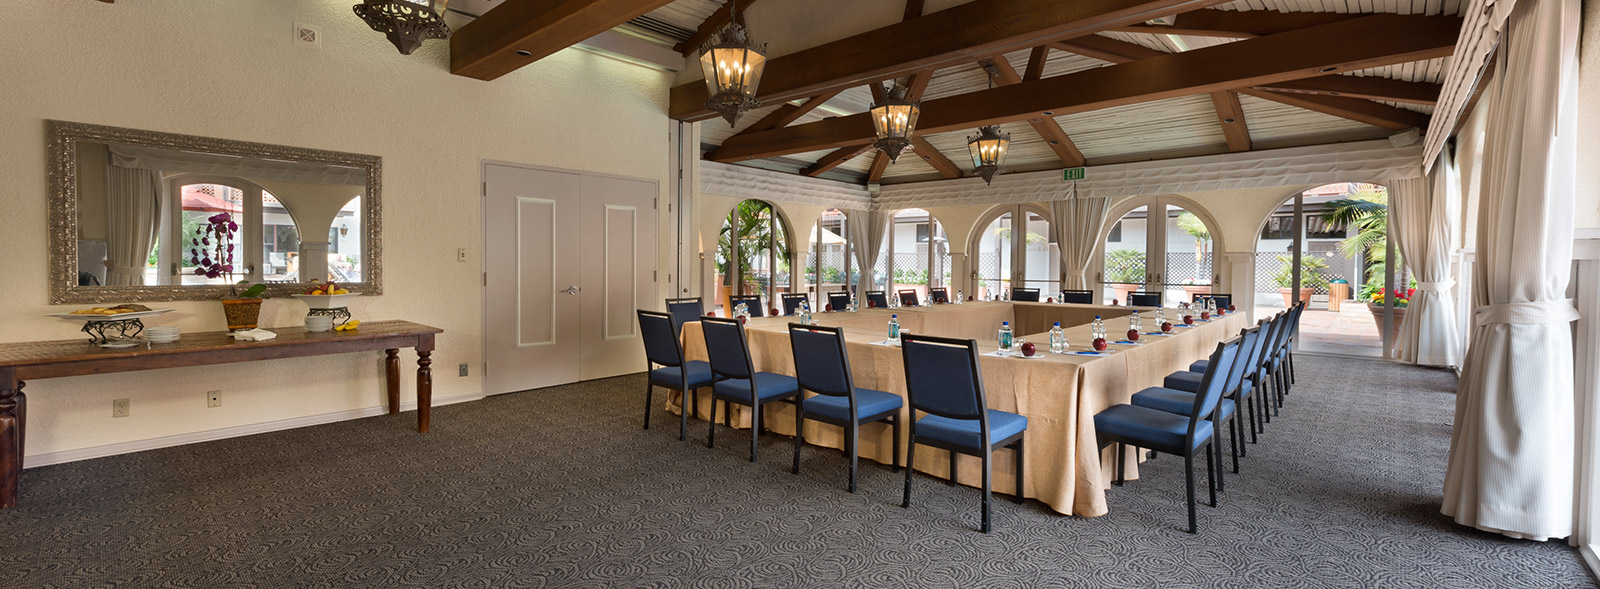 Meeting Venues at La Jolla Shores Hotel, California